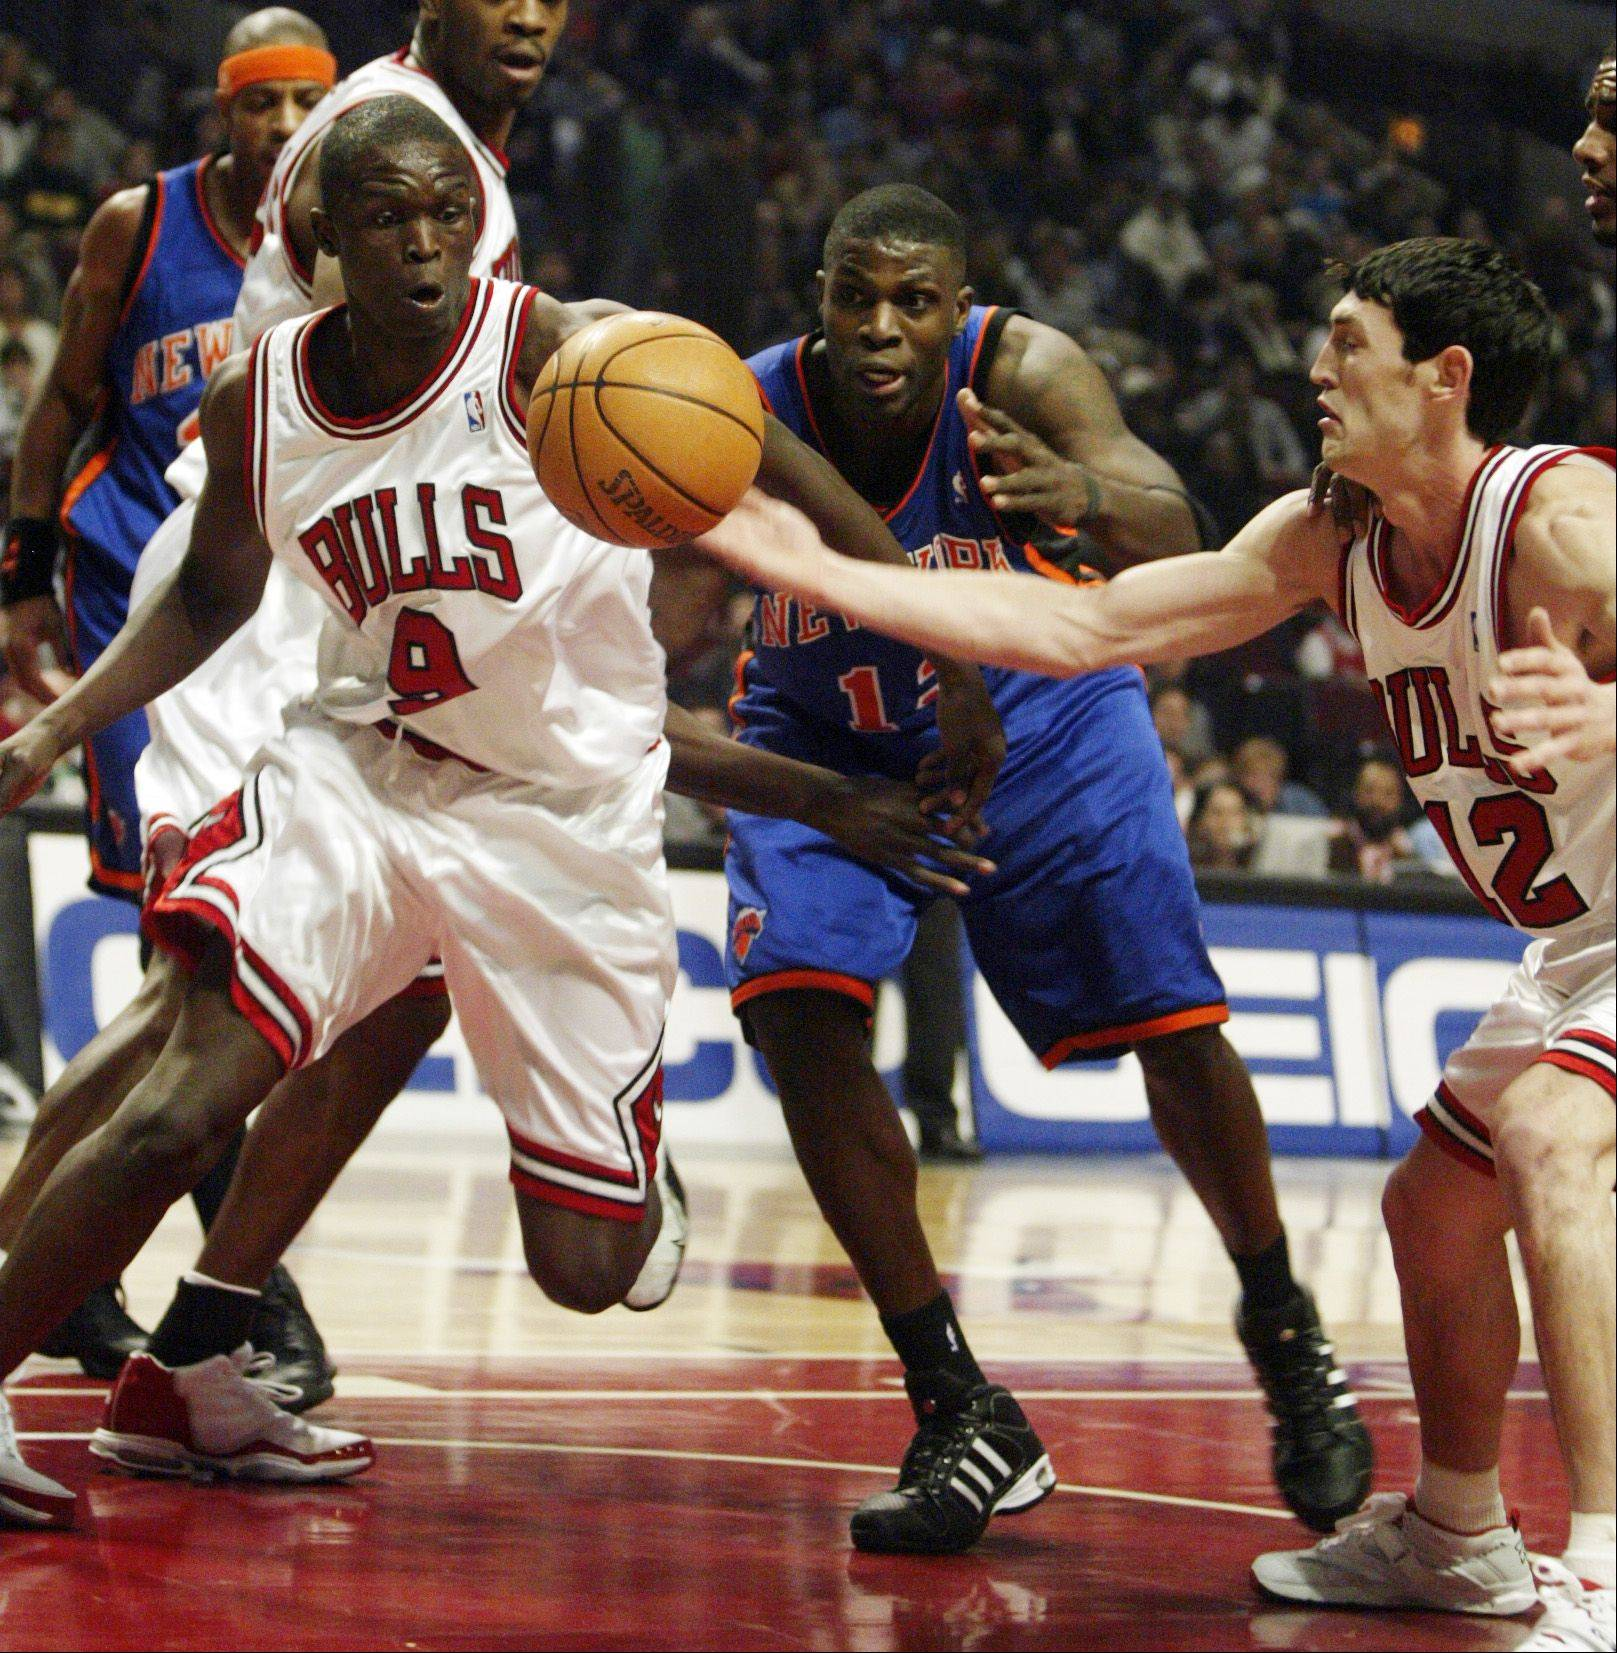 Nazr Mohammed, here facing the Bulls' Luol Deng, left, and Kirk Hinrich in 2005 as a member of the New York Knicks, is excited about the Bulls' preseason opener Tuesday night at the United Center.